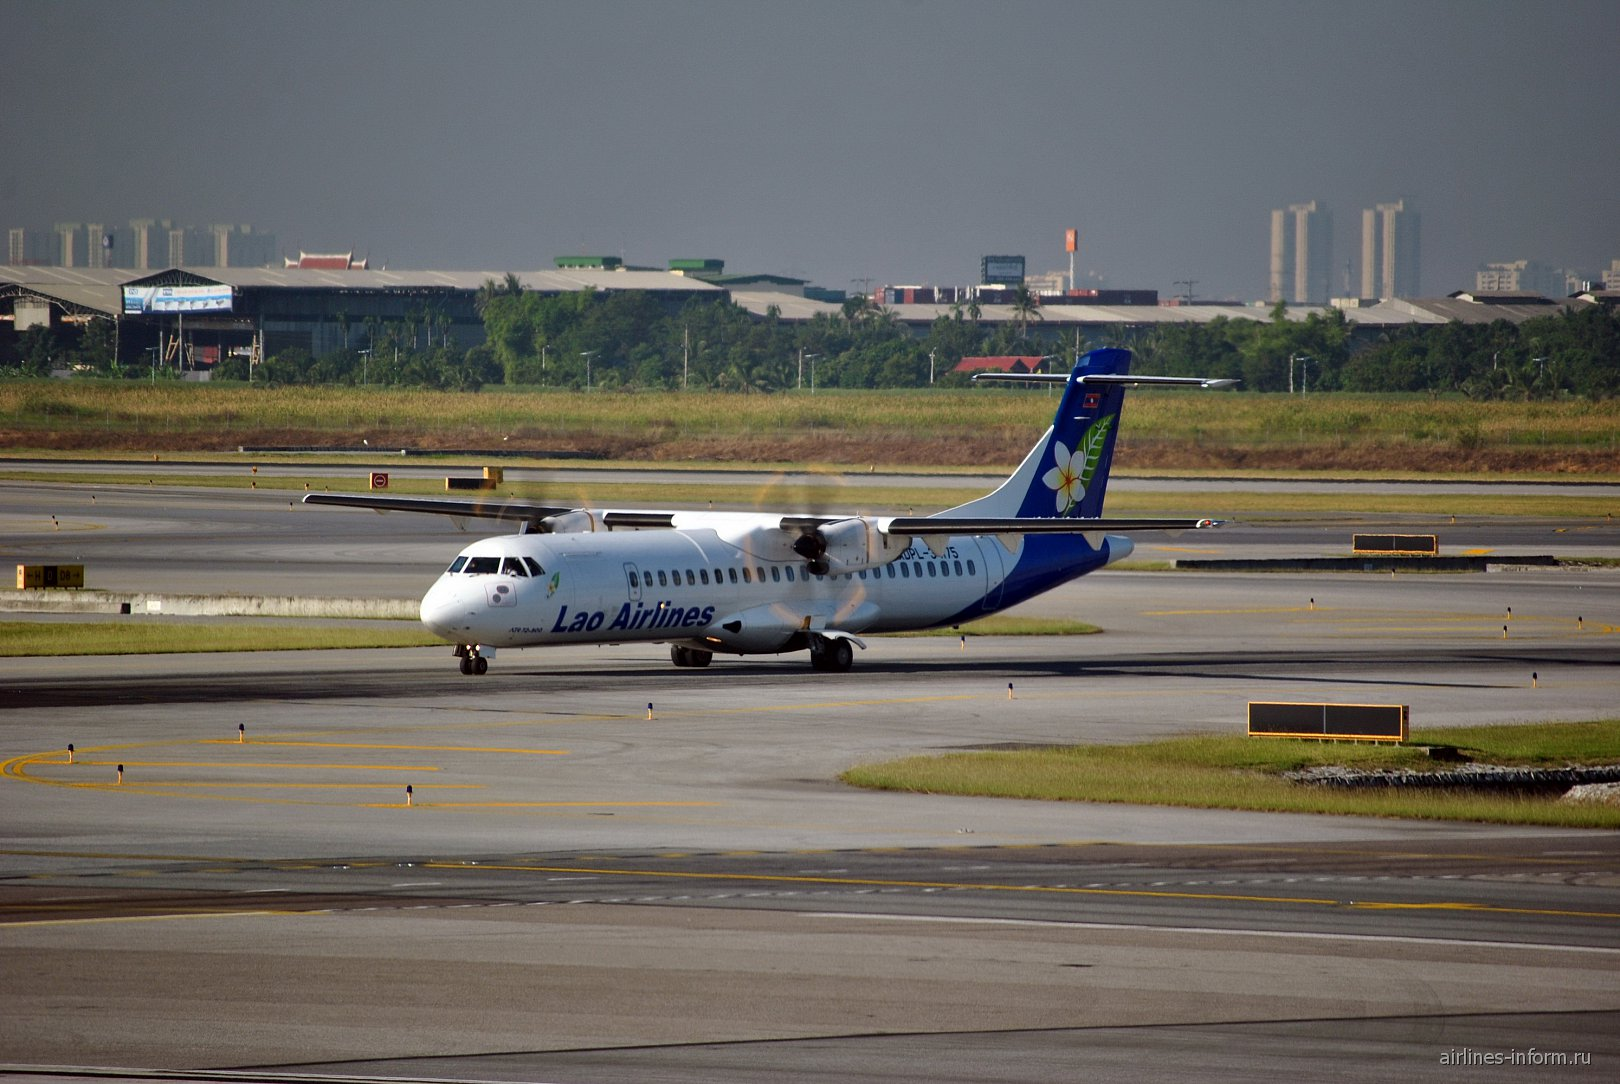 ������� ATR 72 ������������ Lao Airlines � ��������� ������� �����������